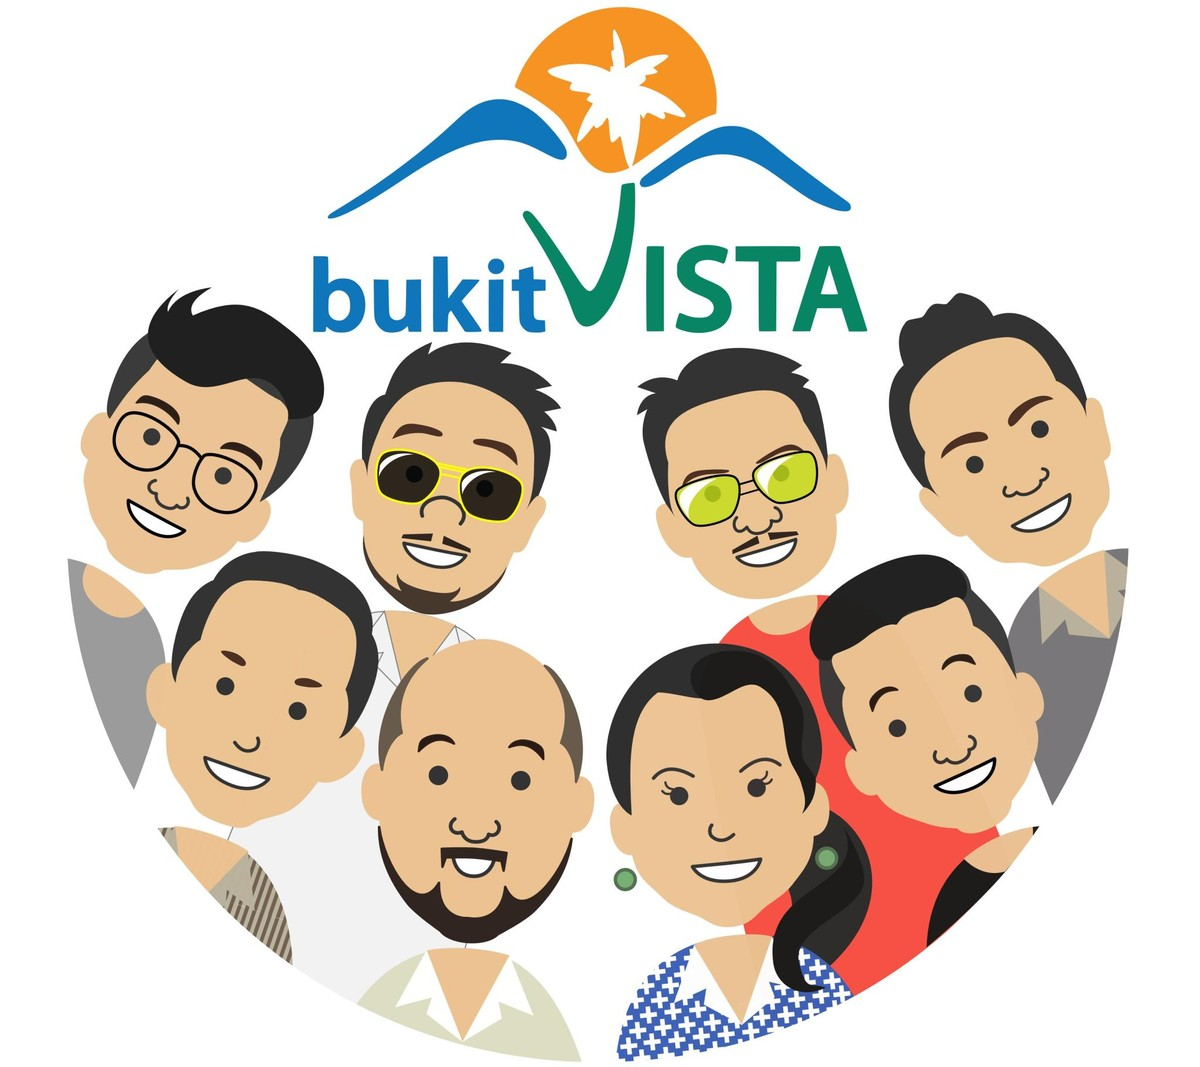 BukitVista is a hospitality community of professional Airbnb hosts